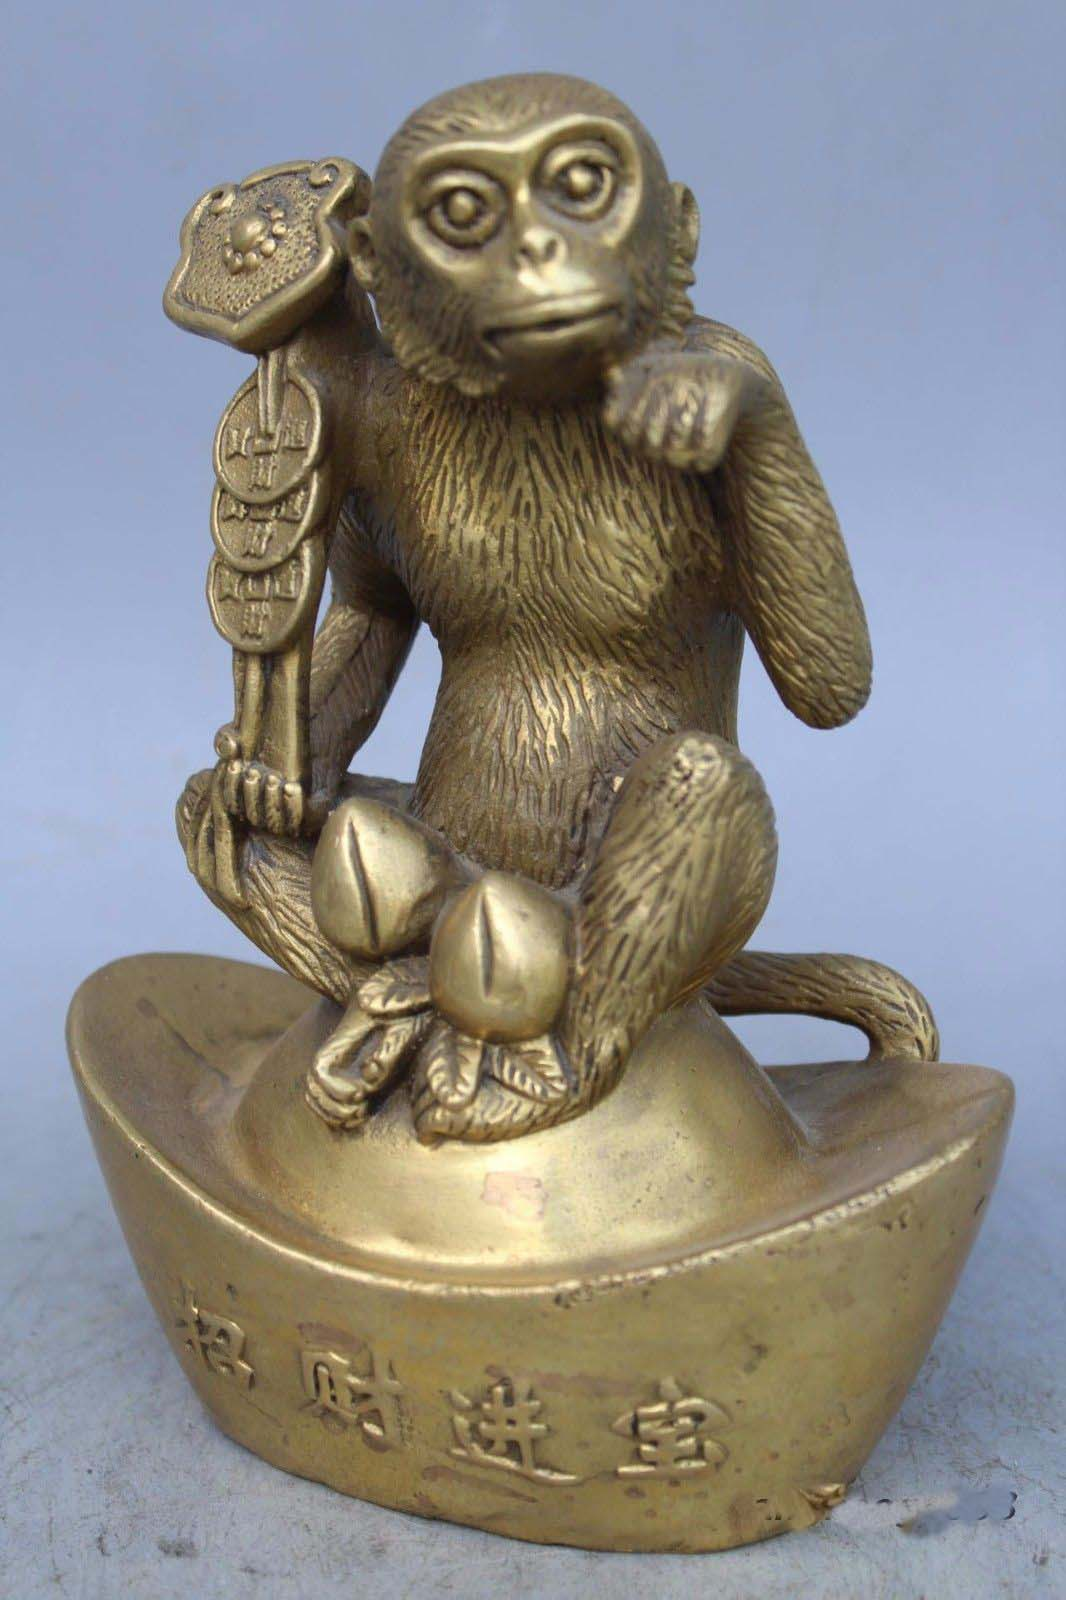 7 China brass copper carved fine Yuan Bao money lucky monkey Sculpture Statue7 China brass copper carved fine Yuan Bao money lucky monkey Sculpture Statue